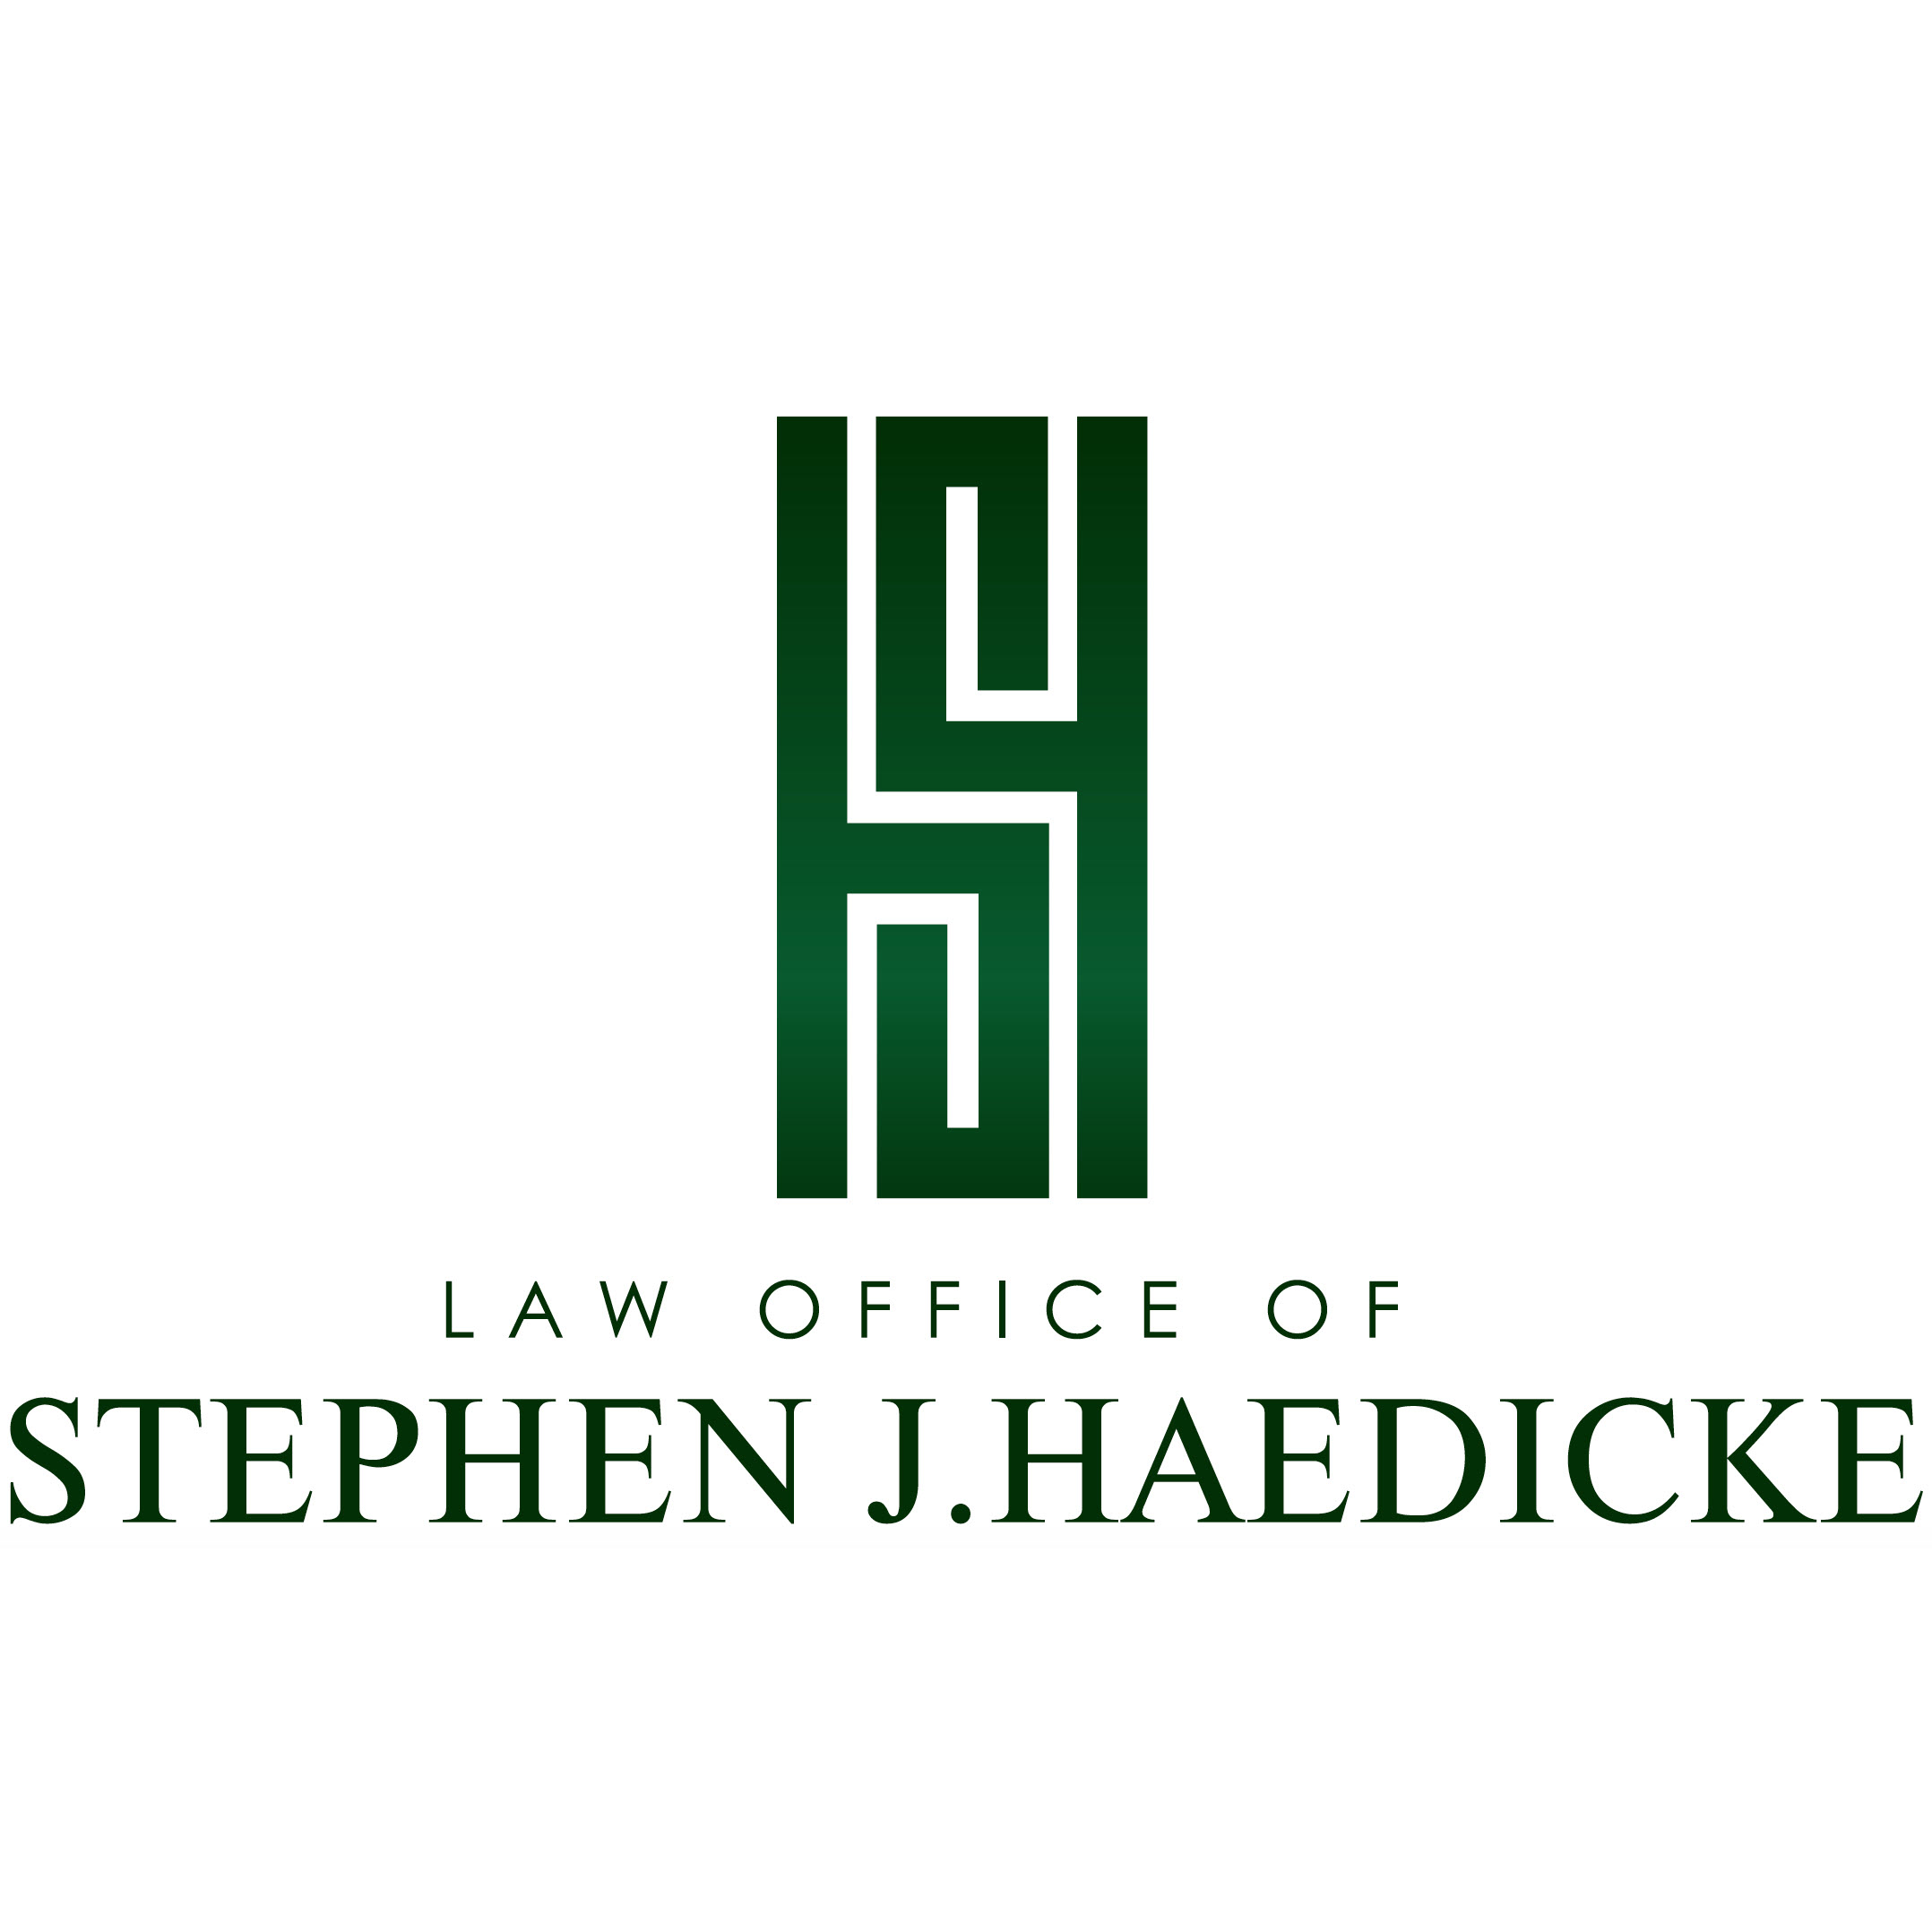 Law Office of Stephen J. Haedicke, LLC is the Trusted White Collar Crime Lawyer in New Orleans, Louisiana